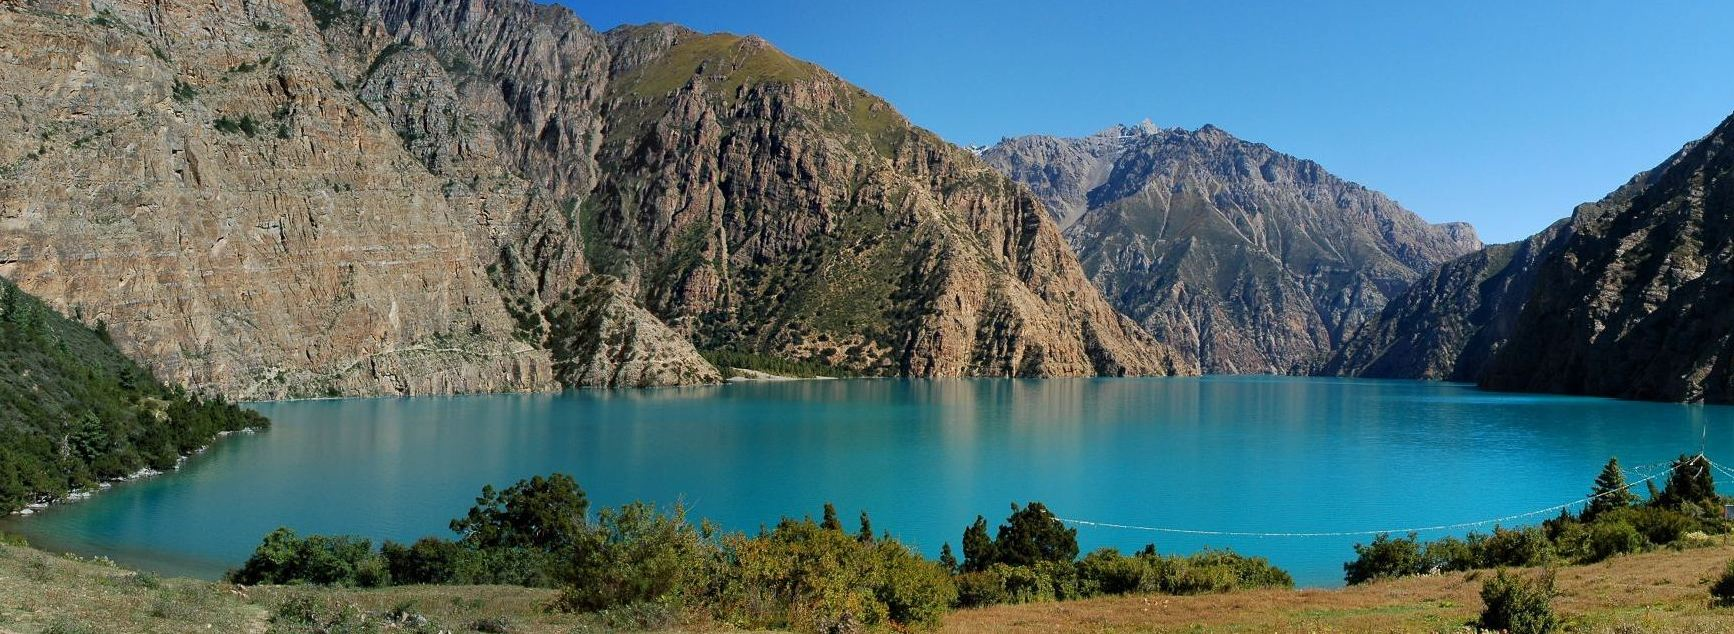 Phoksundo lake is a freshwater lake located at shey phoksundo national park in nepal the lake is popular for its majestic blue green watercolor